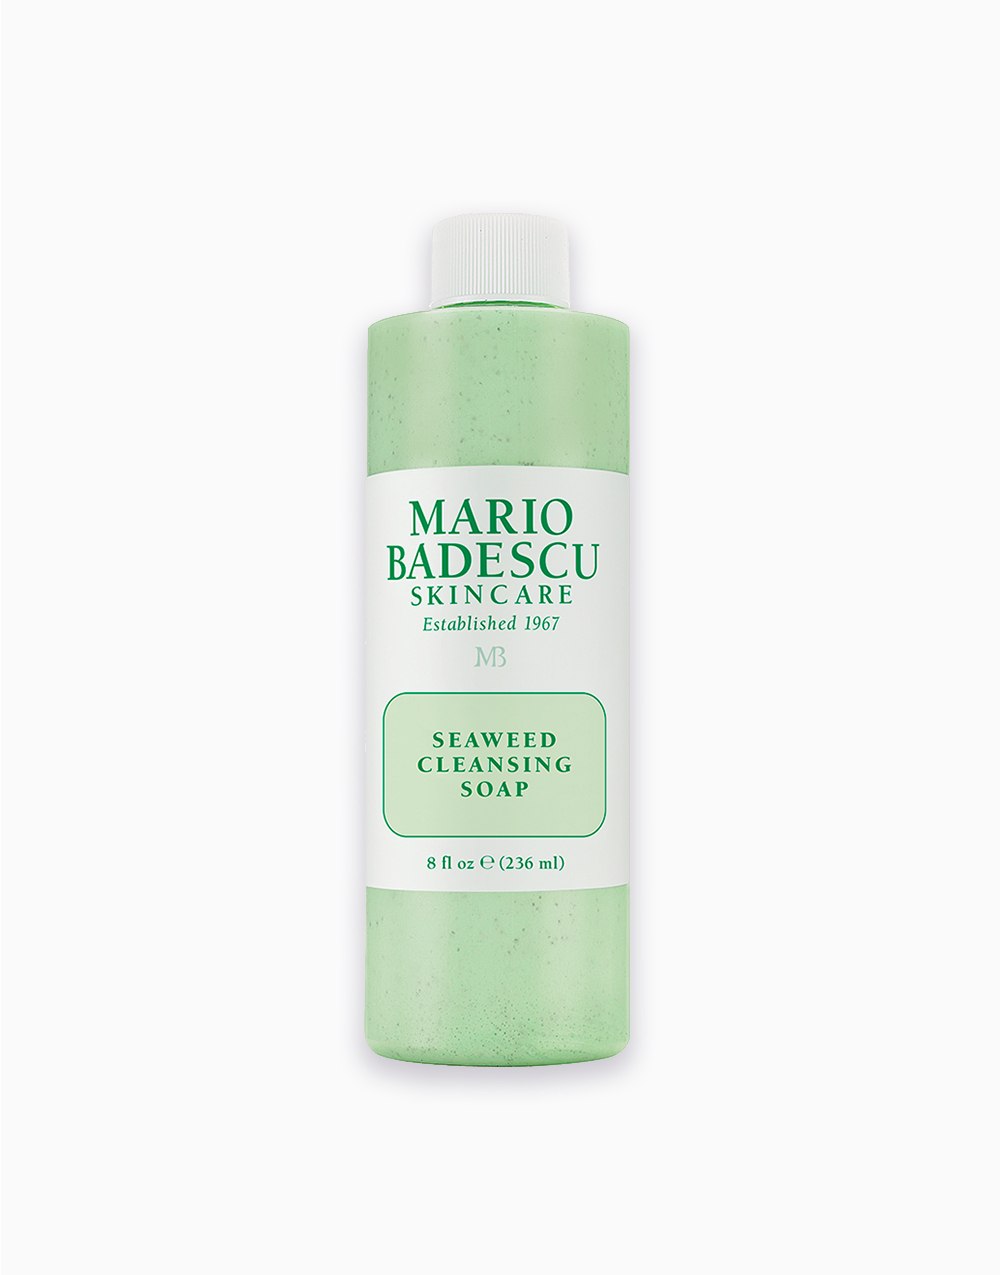 Seaweed Cleansing Soap (8oz) by Mario Badescu